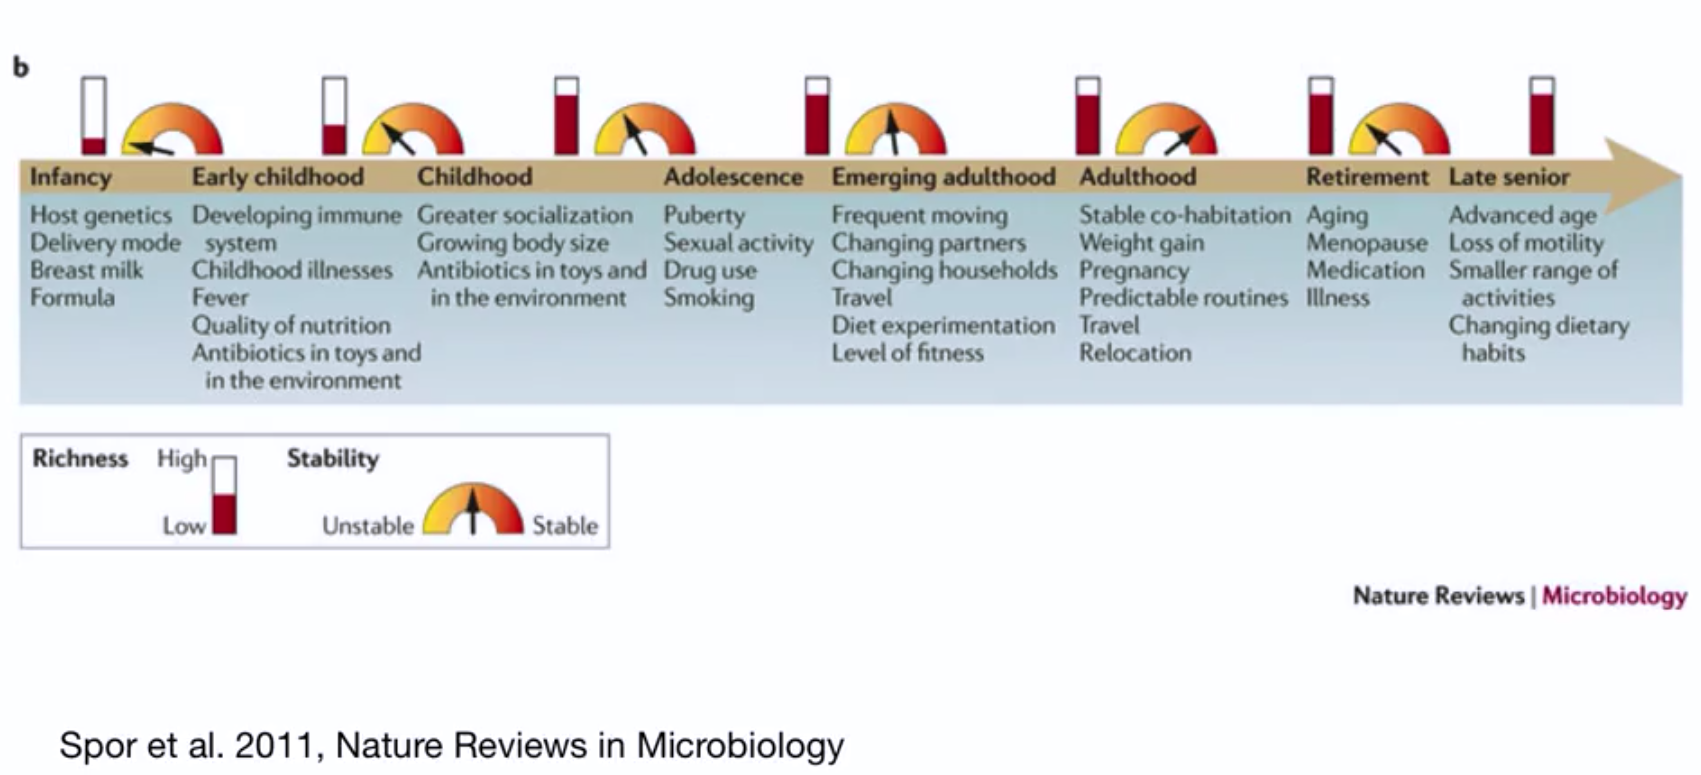 Microbiome evolution